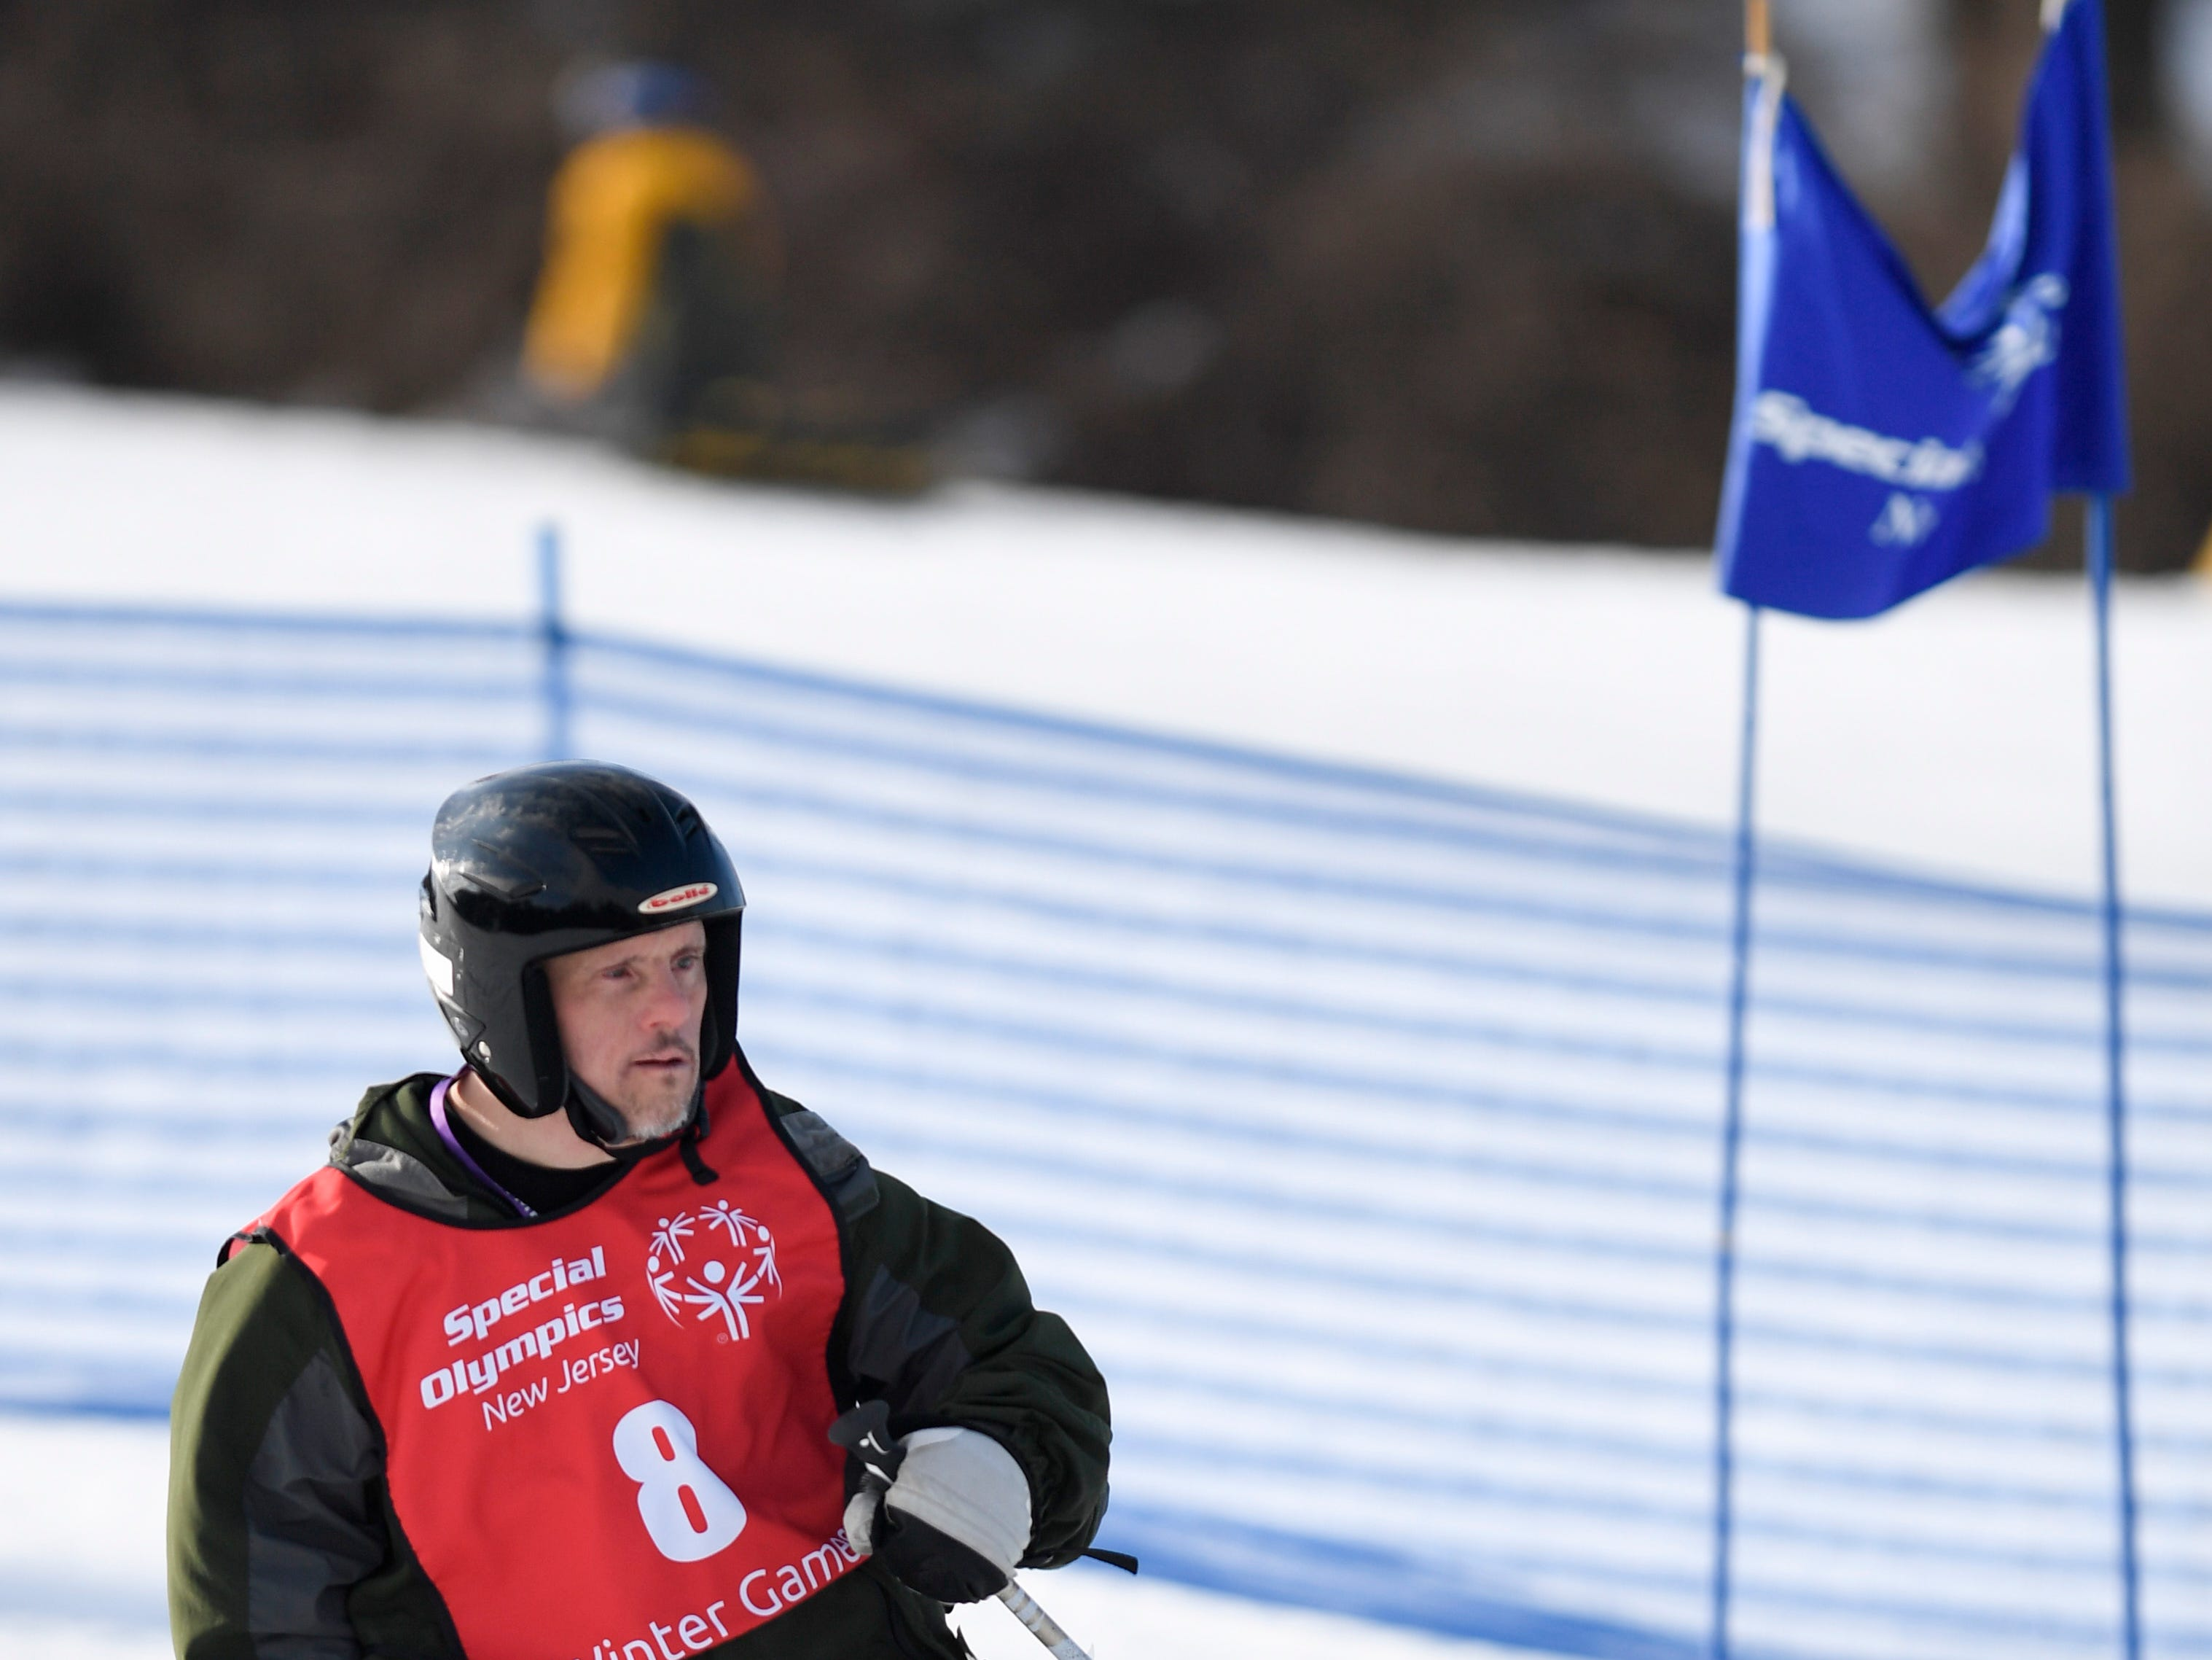 Michael Corbett of Allendale competes in the giant slalom during the Special Olympics New Jersey 2019 Winter Games on Tuesday, Feb. 5, 2019, in Vernon.